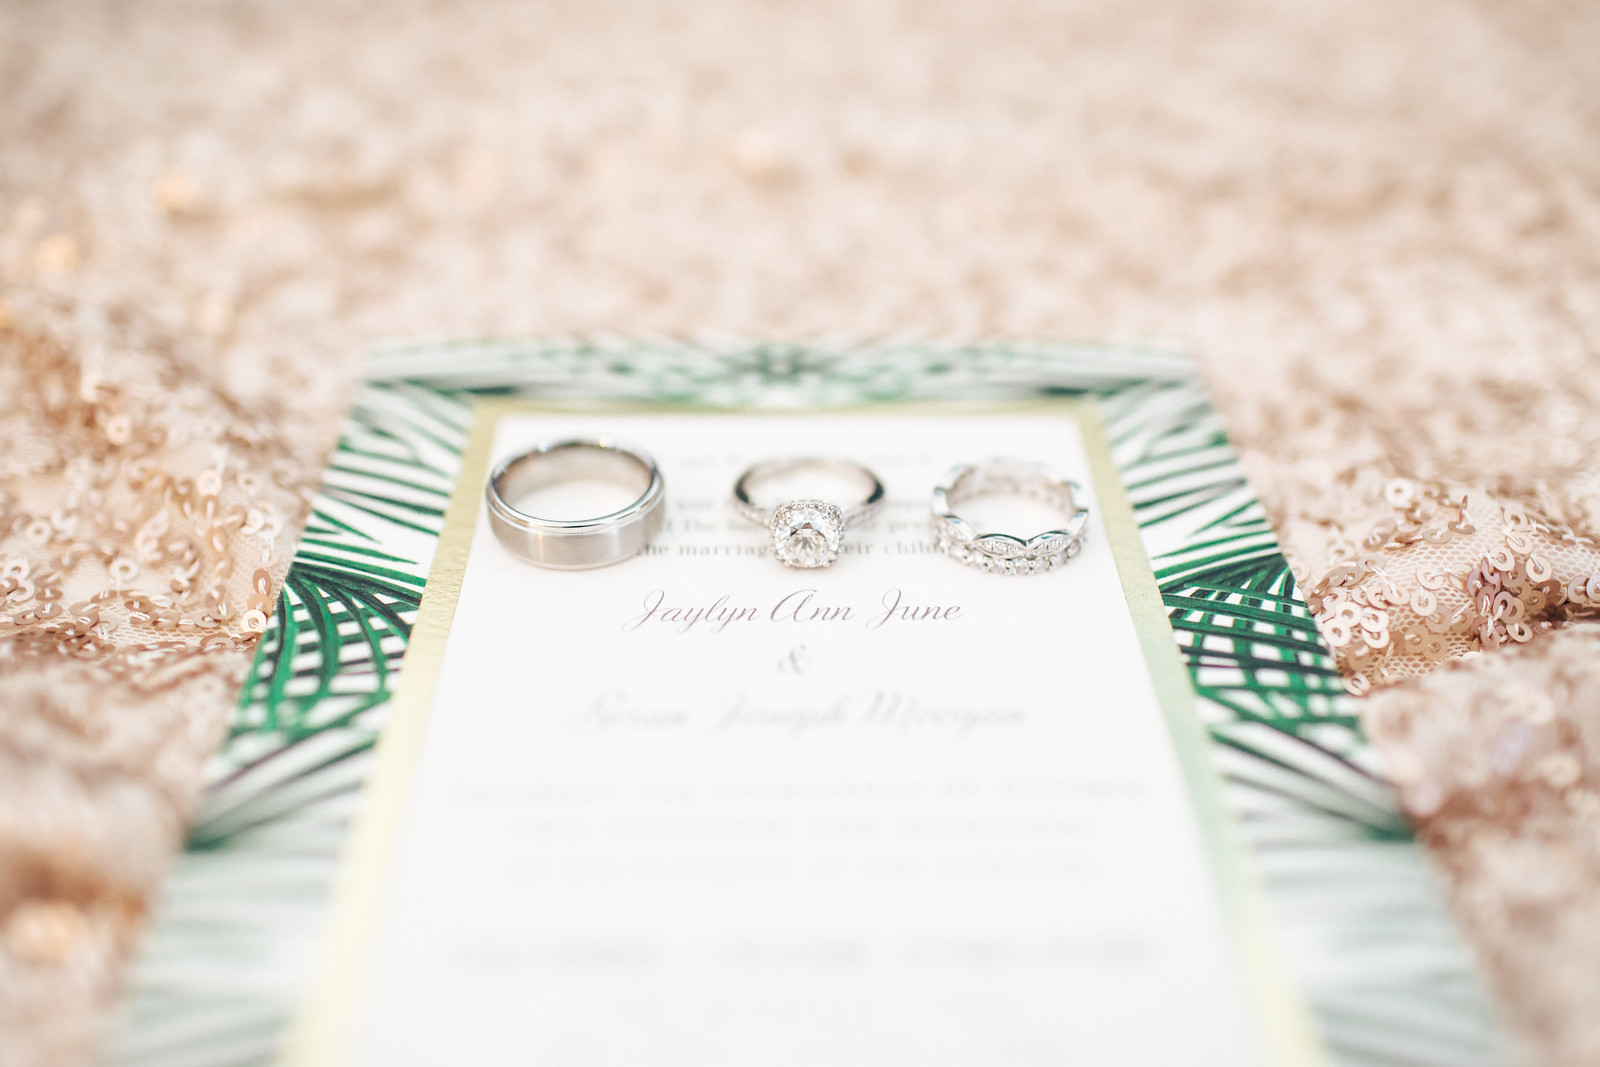 Moogan Wedding Rings